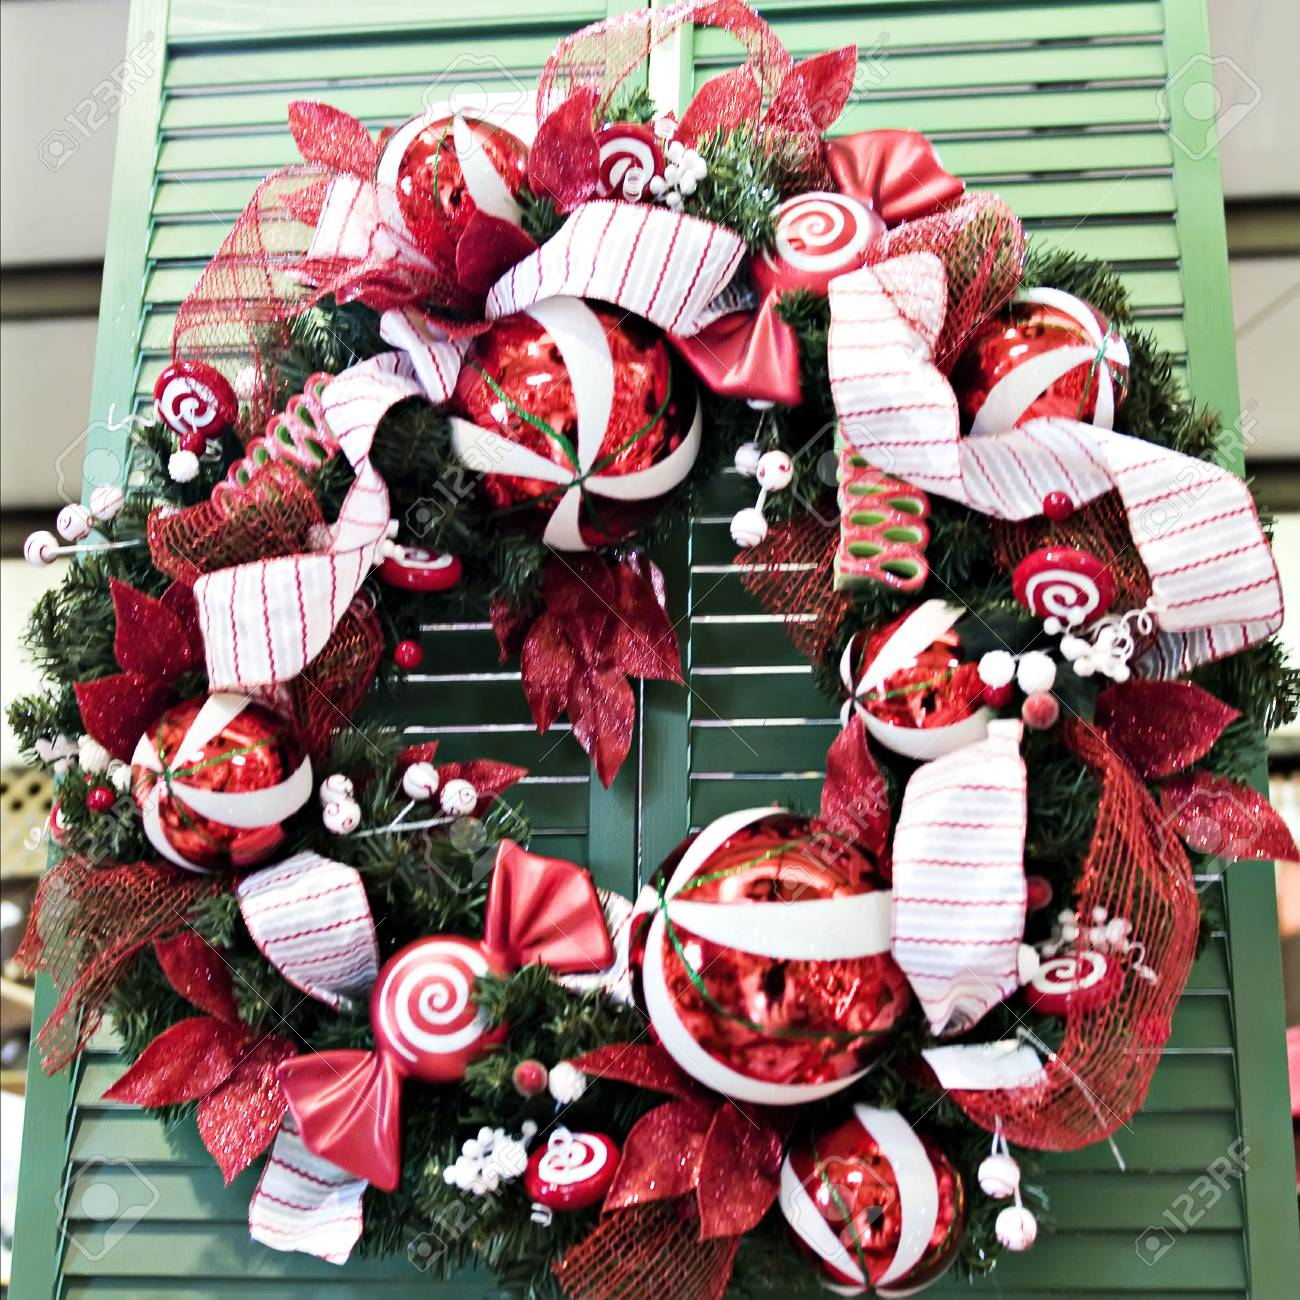 A Red And White Christmas Wreath With Ornaments Stock Photo Picture